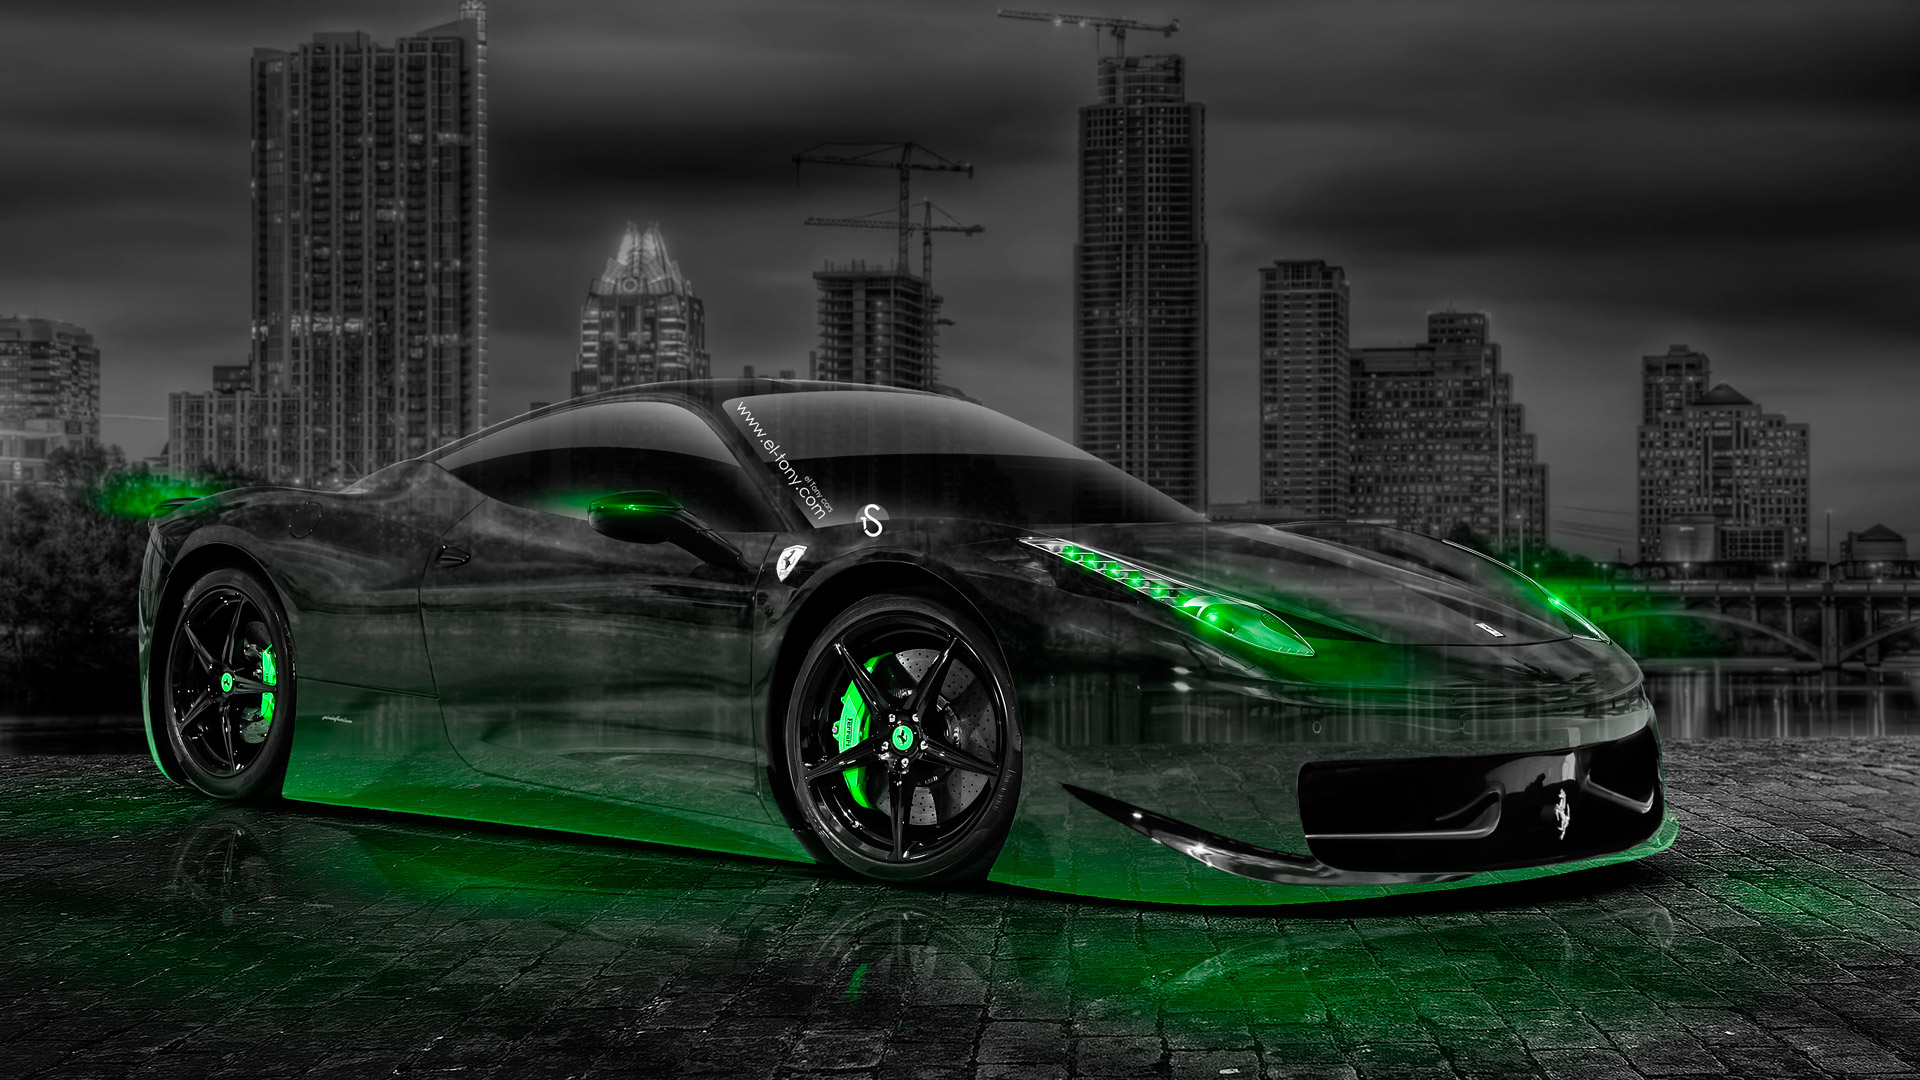 wallpaper green ferrari cars - photo #37